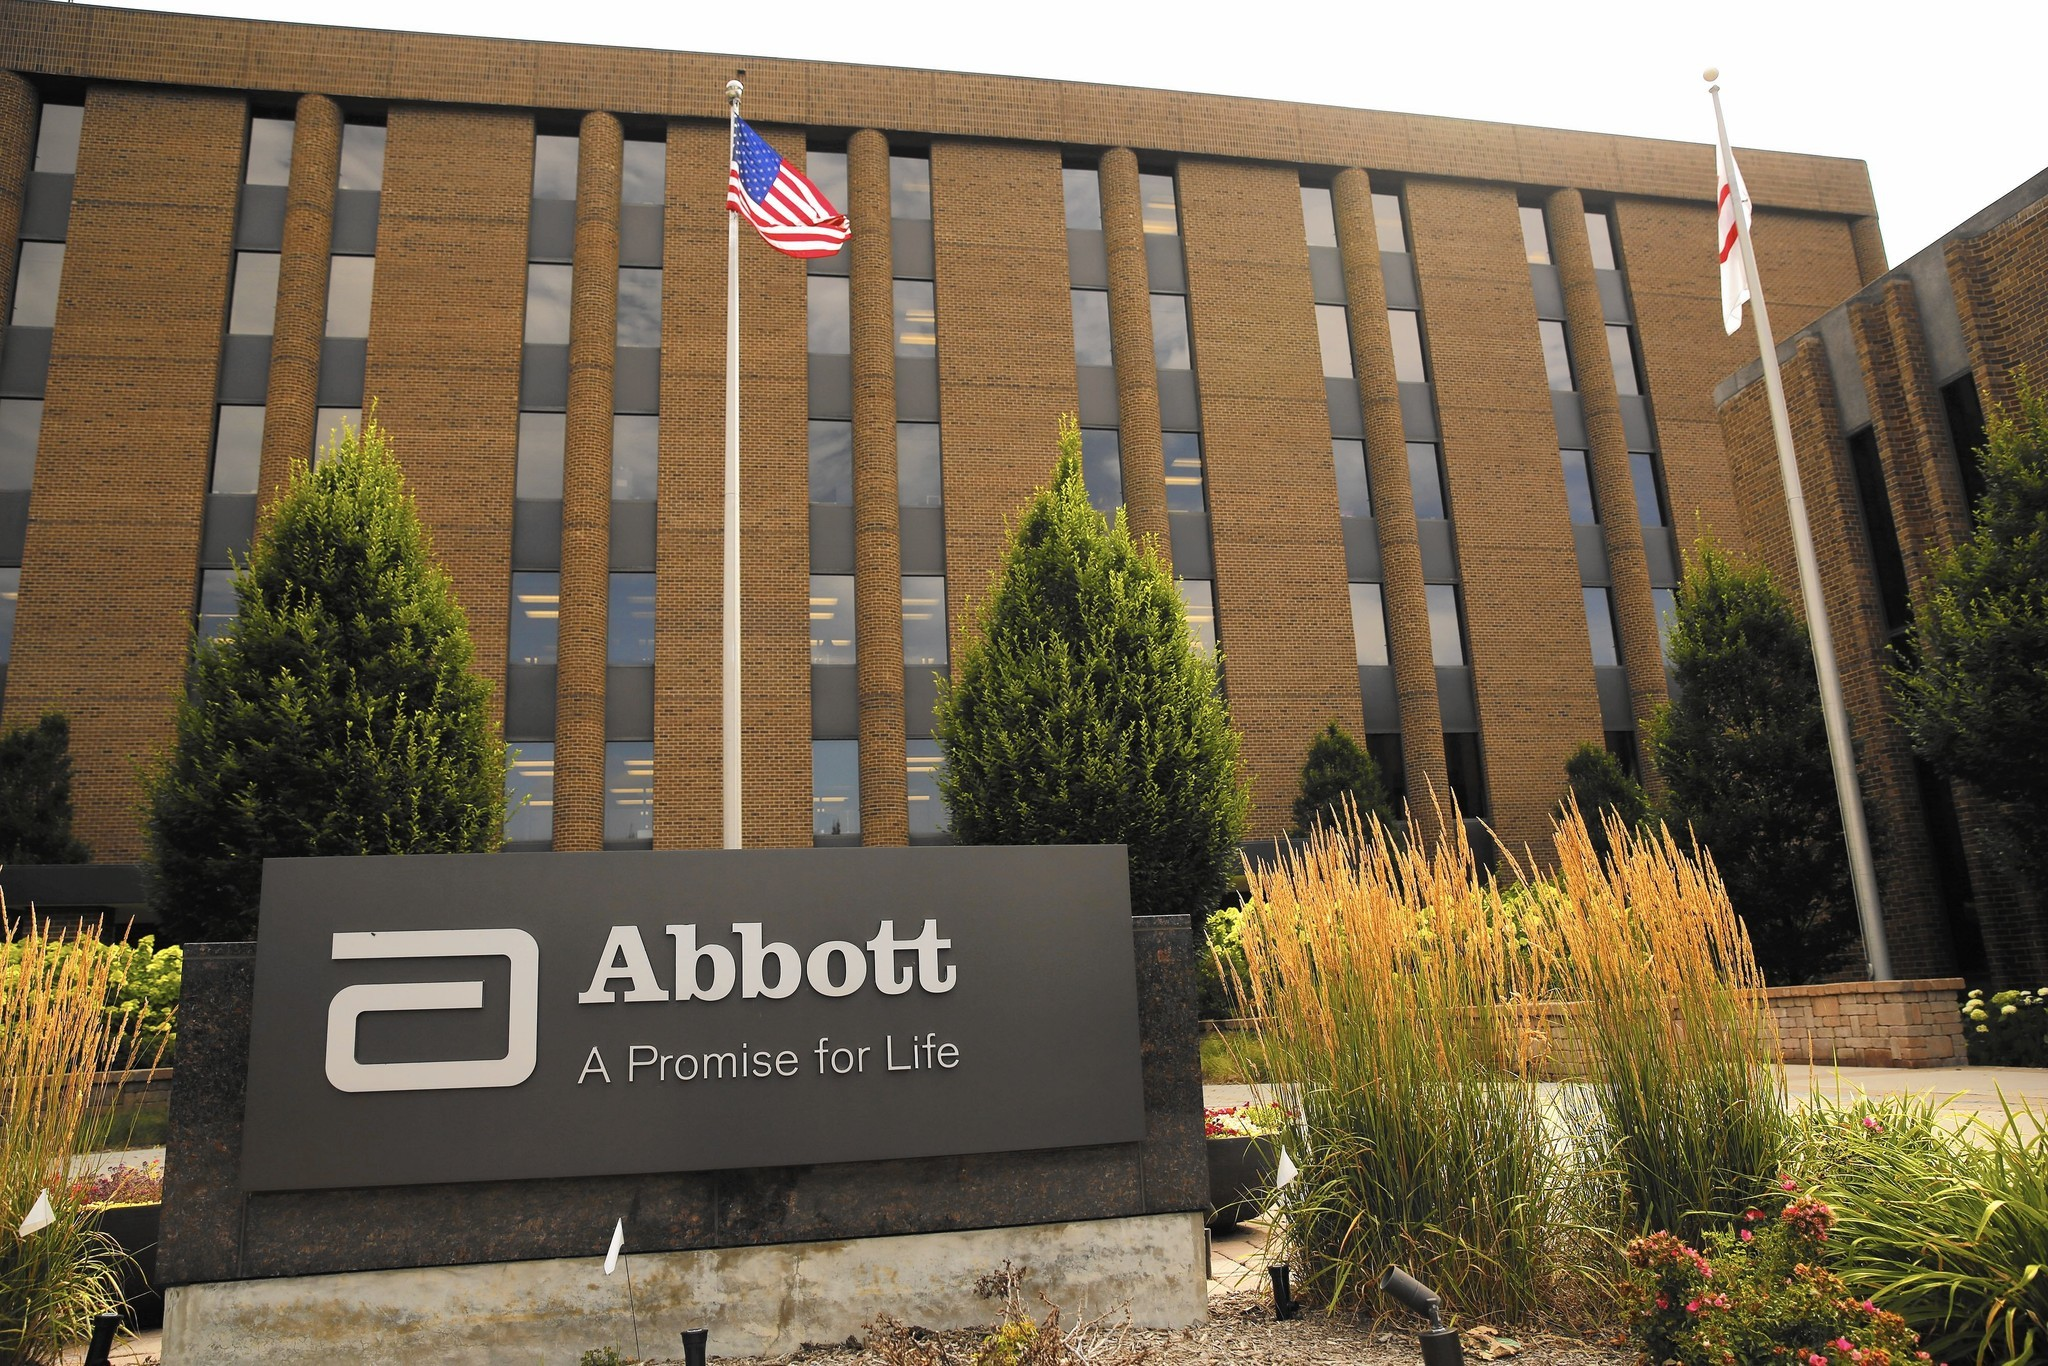 Abbott Finalizes Acquisition Of Jude Boosting Cardiovascular Business Chicago Tribune Jpg 2048x1366